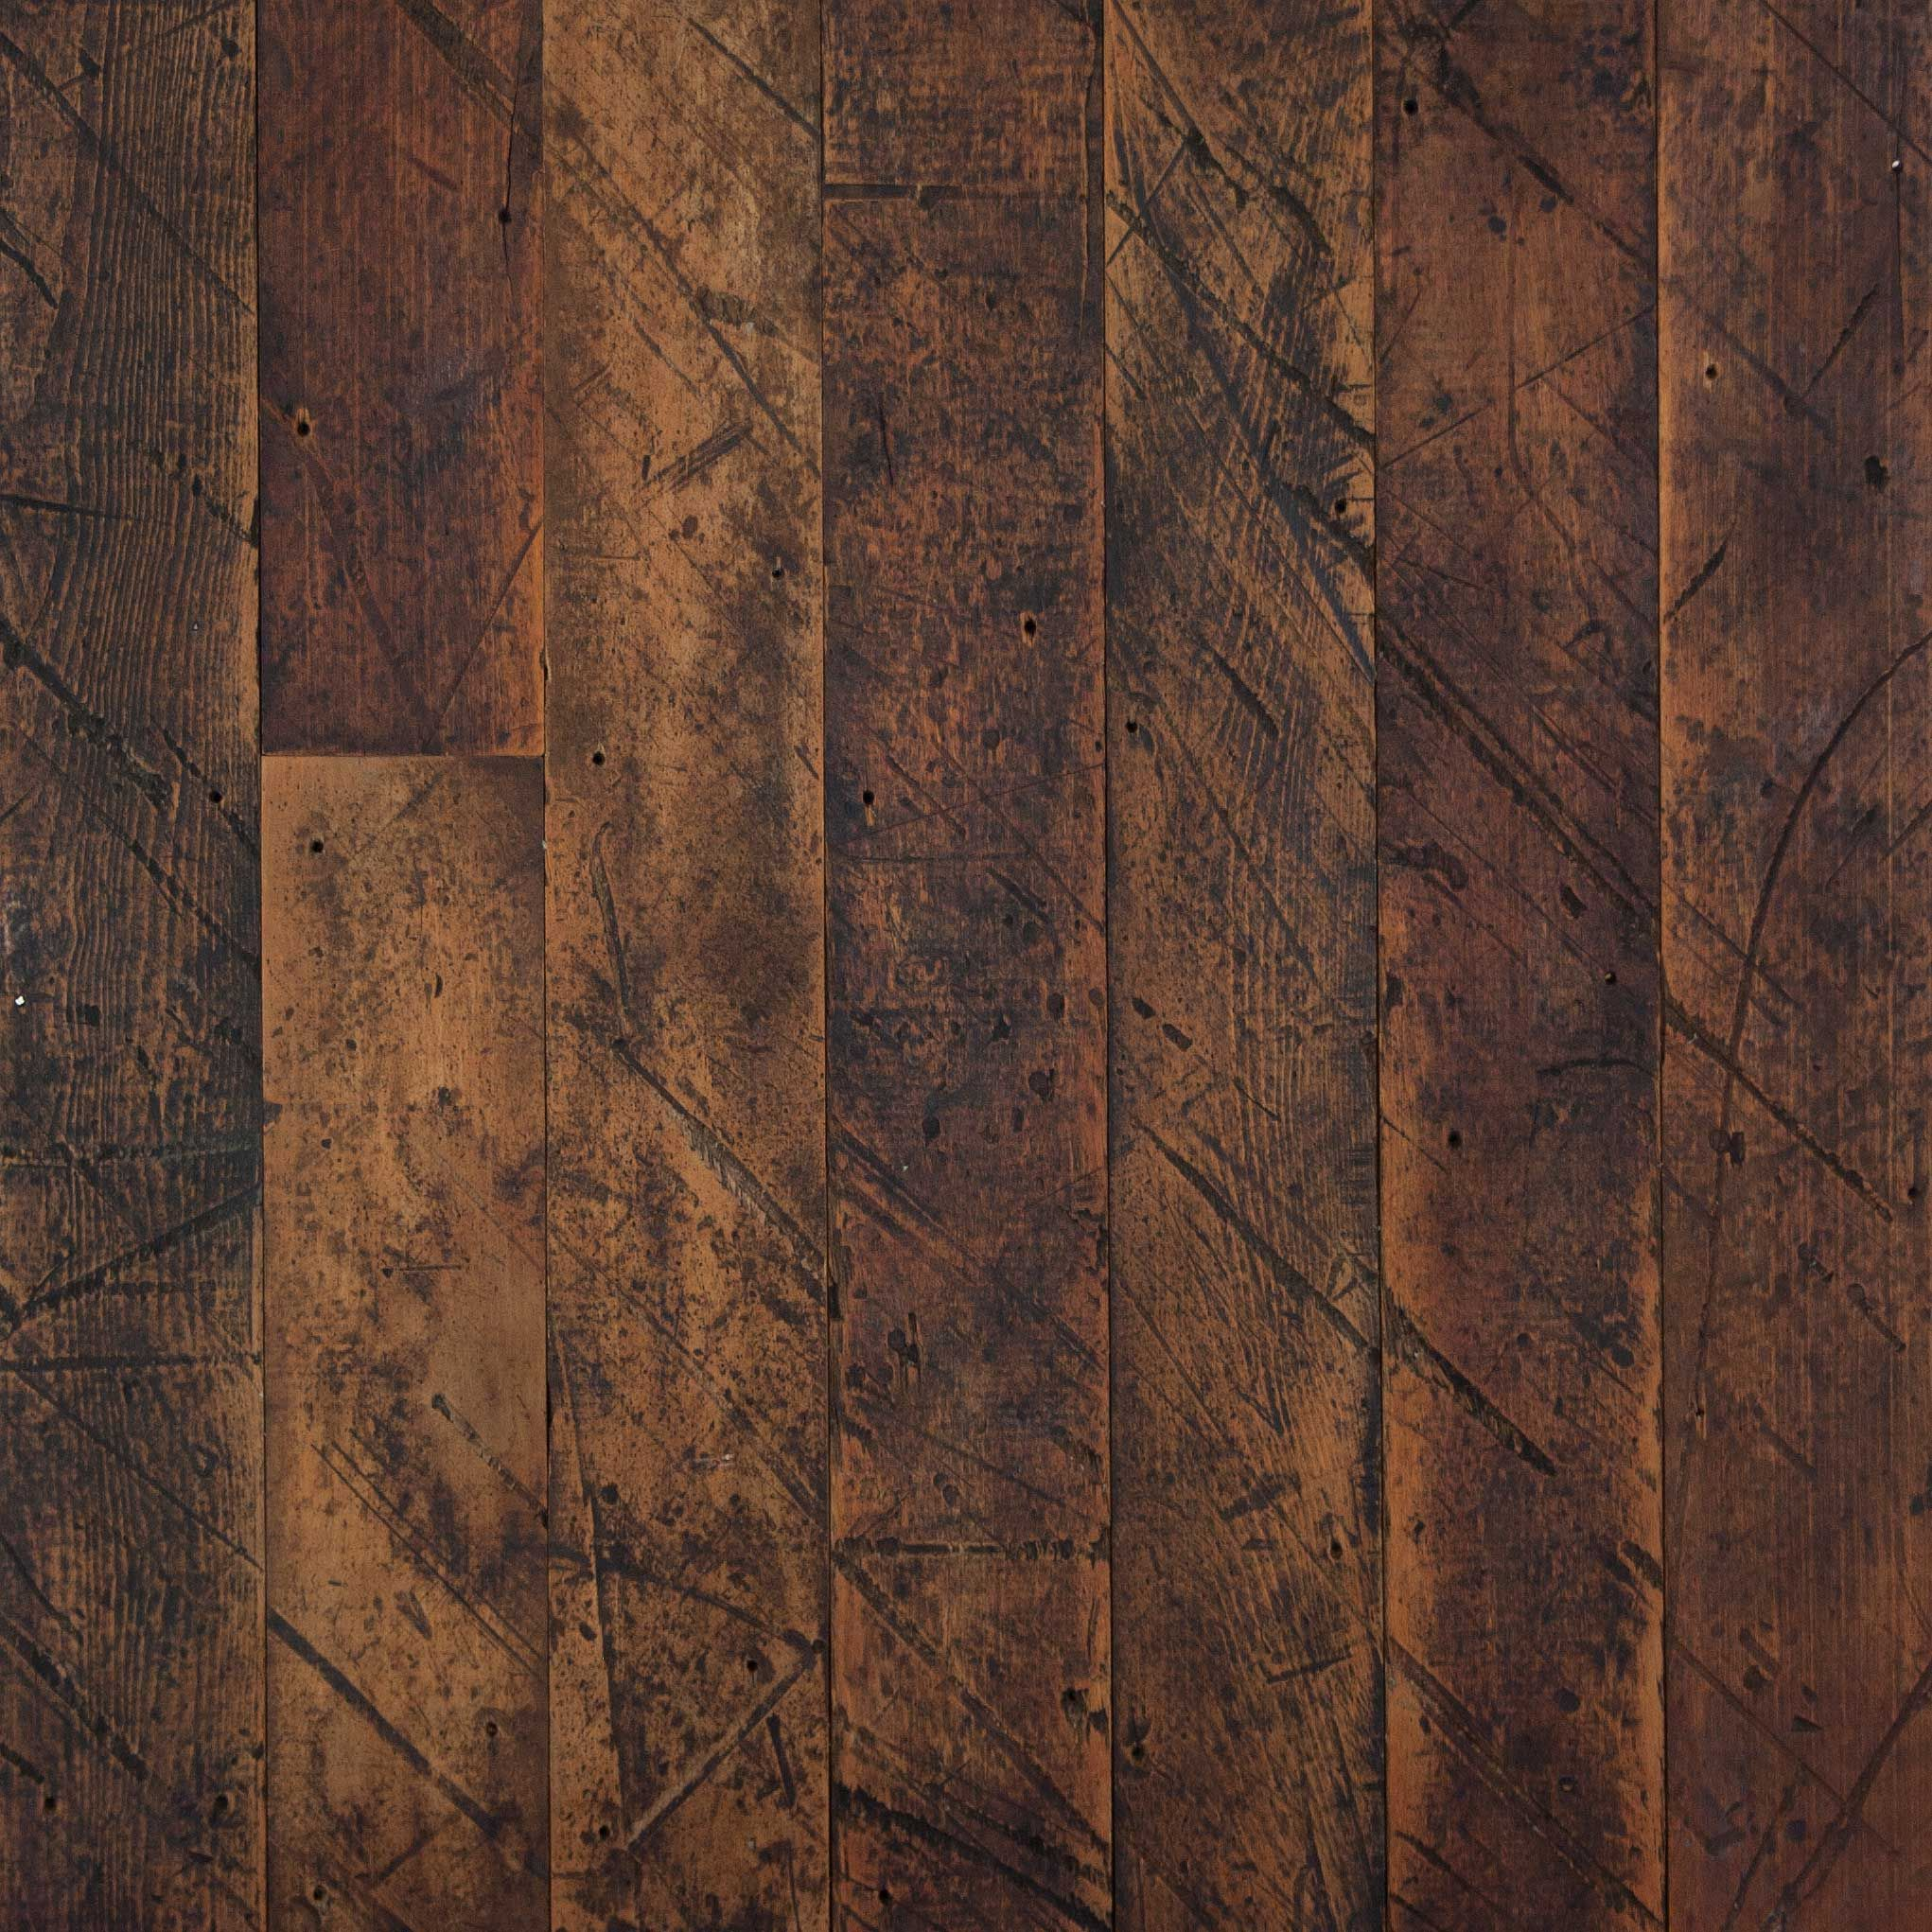 Longleaf lumber reclaimed factory maple flooring for Reclaimed flooring